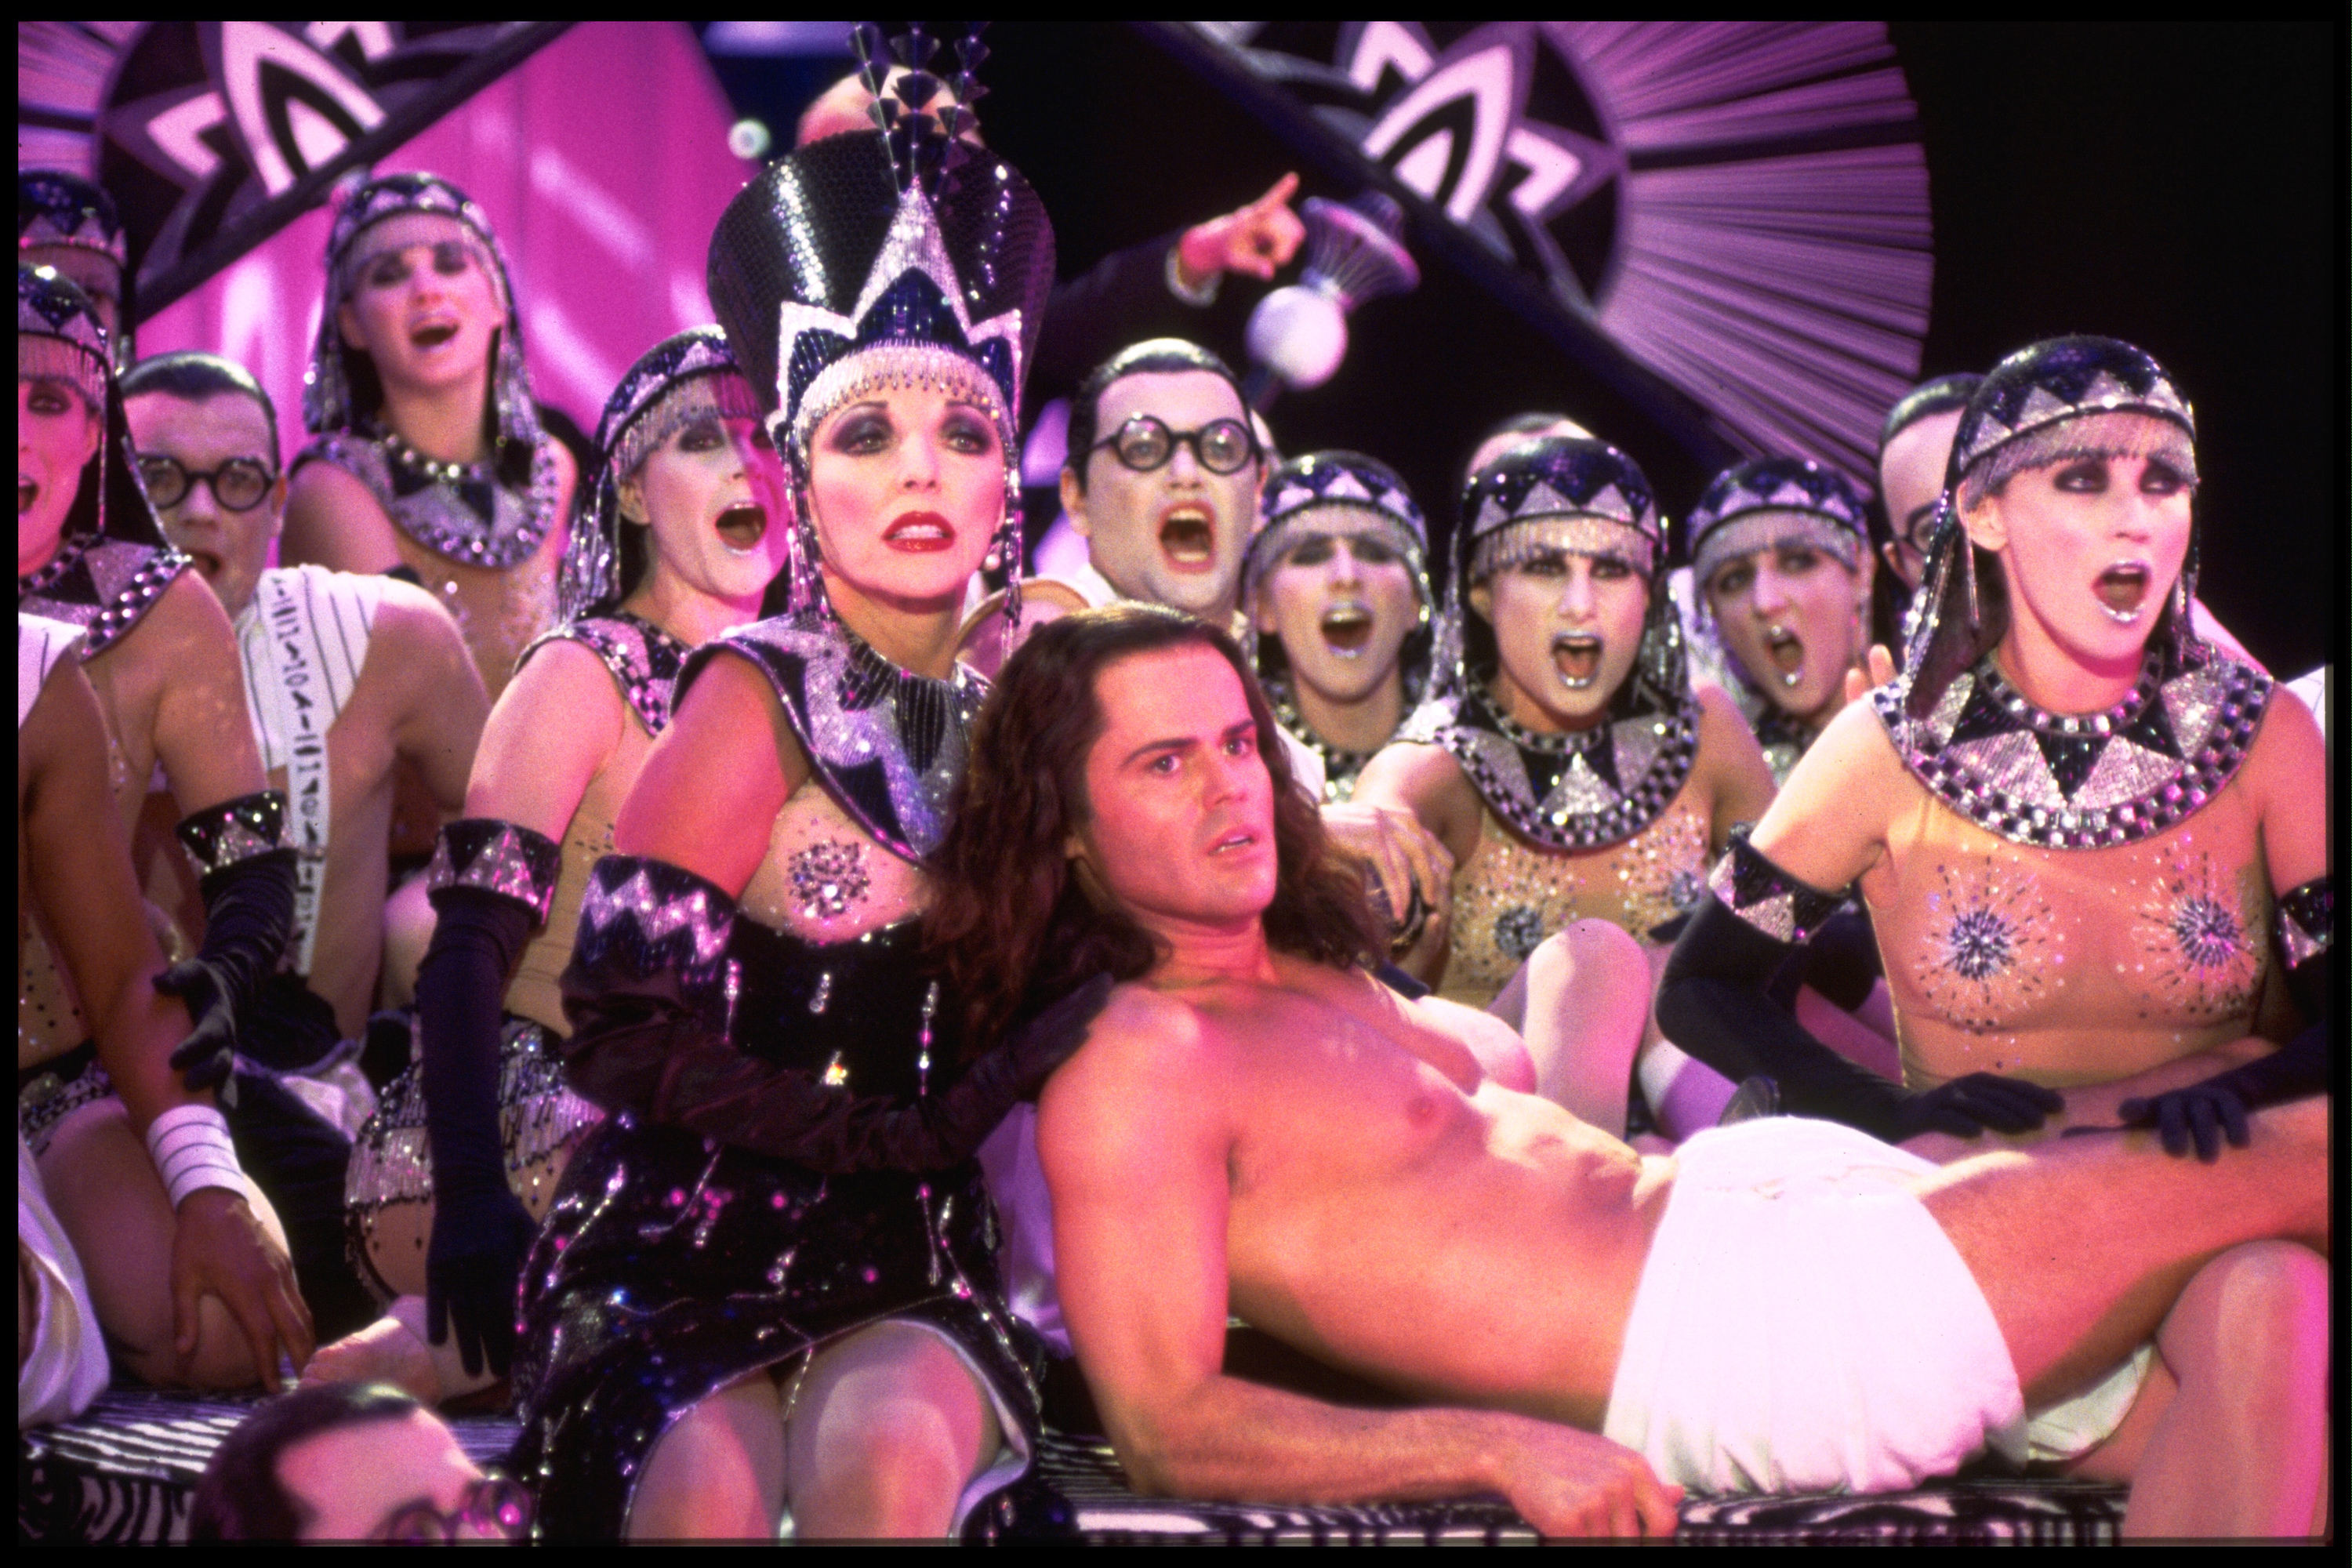 Donny Osmond and Joan Collins in Joseph and the Amazing Technicolor Dreamcoat